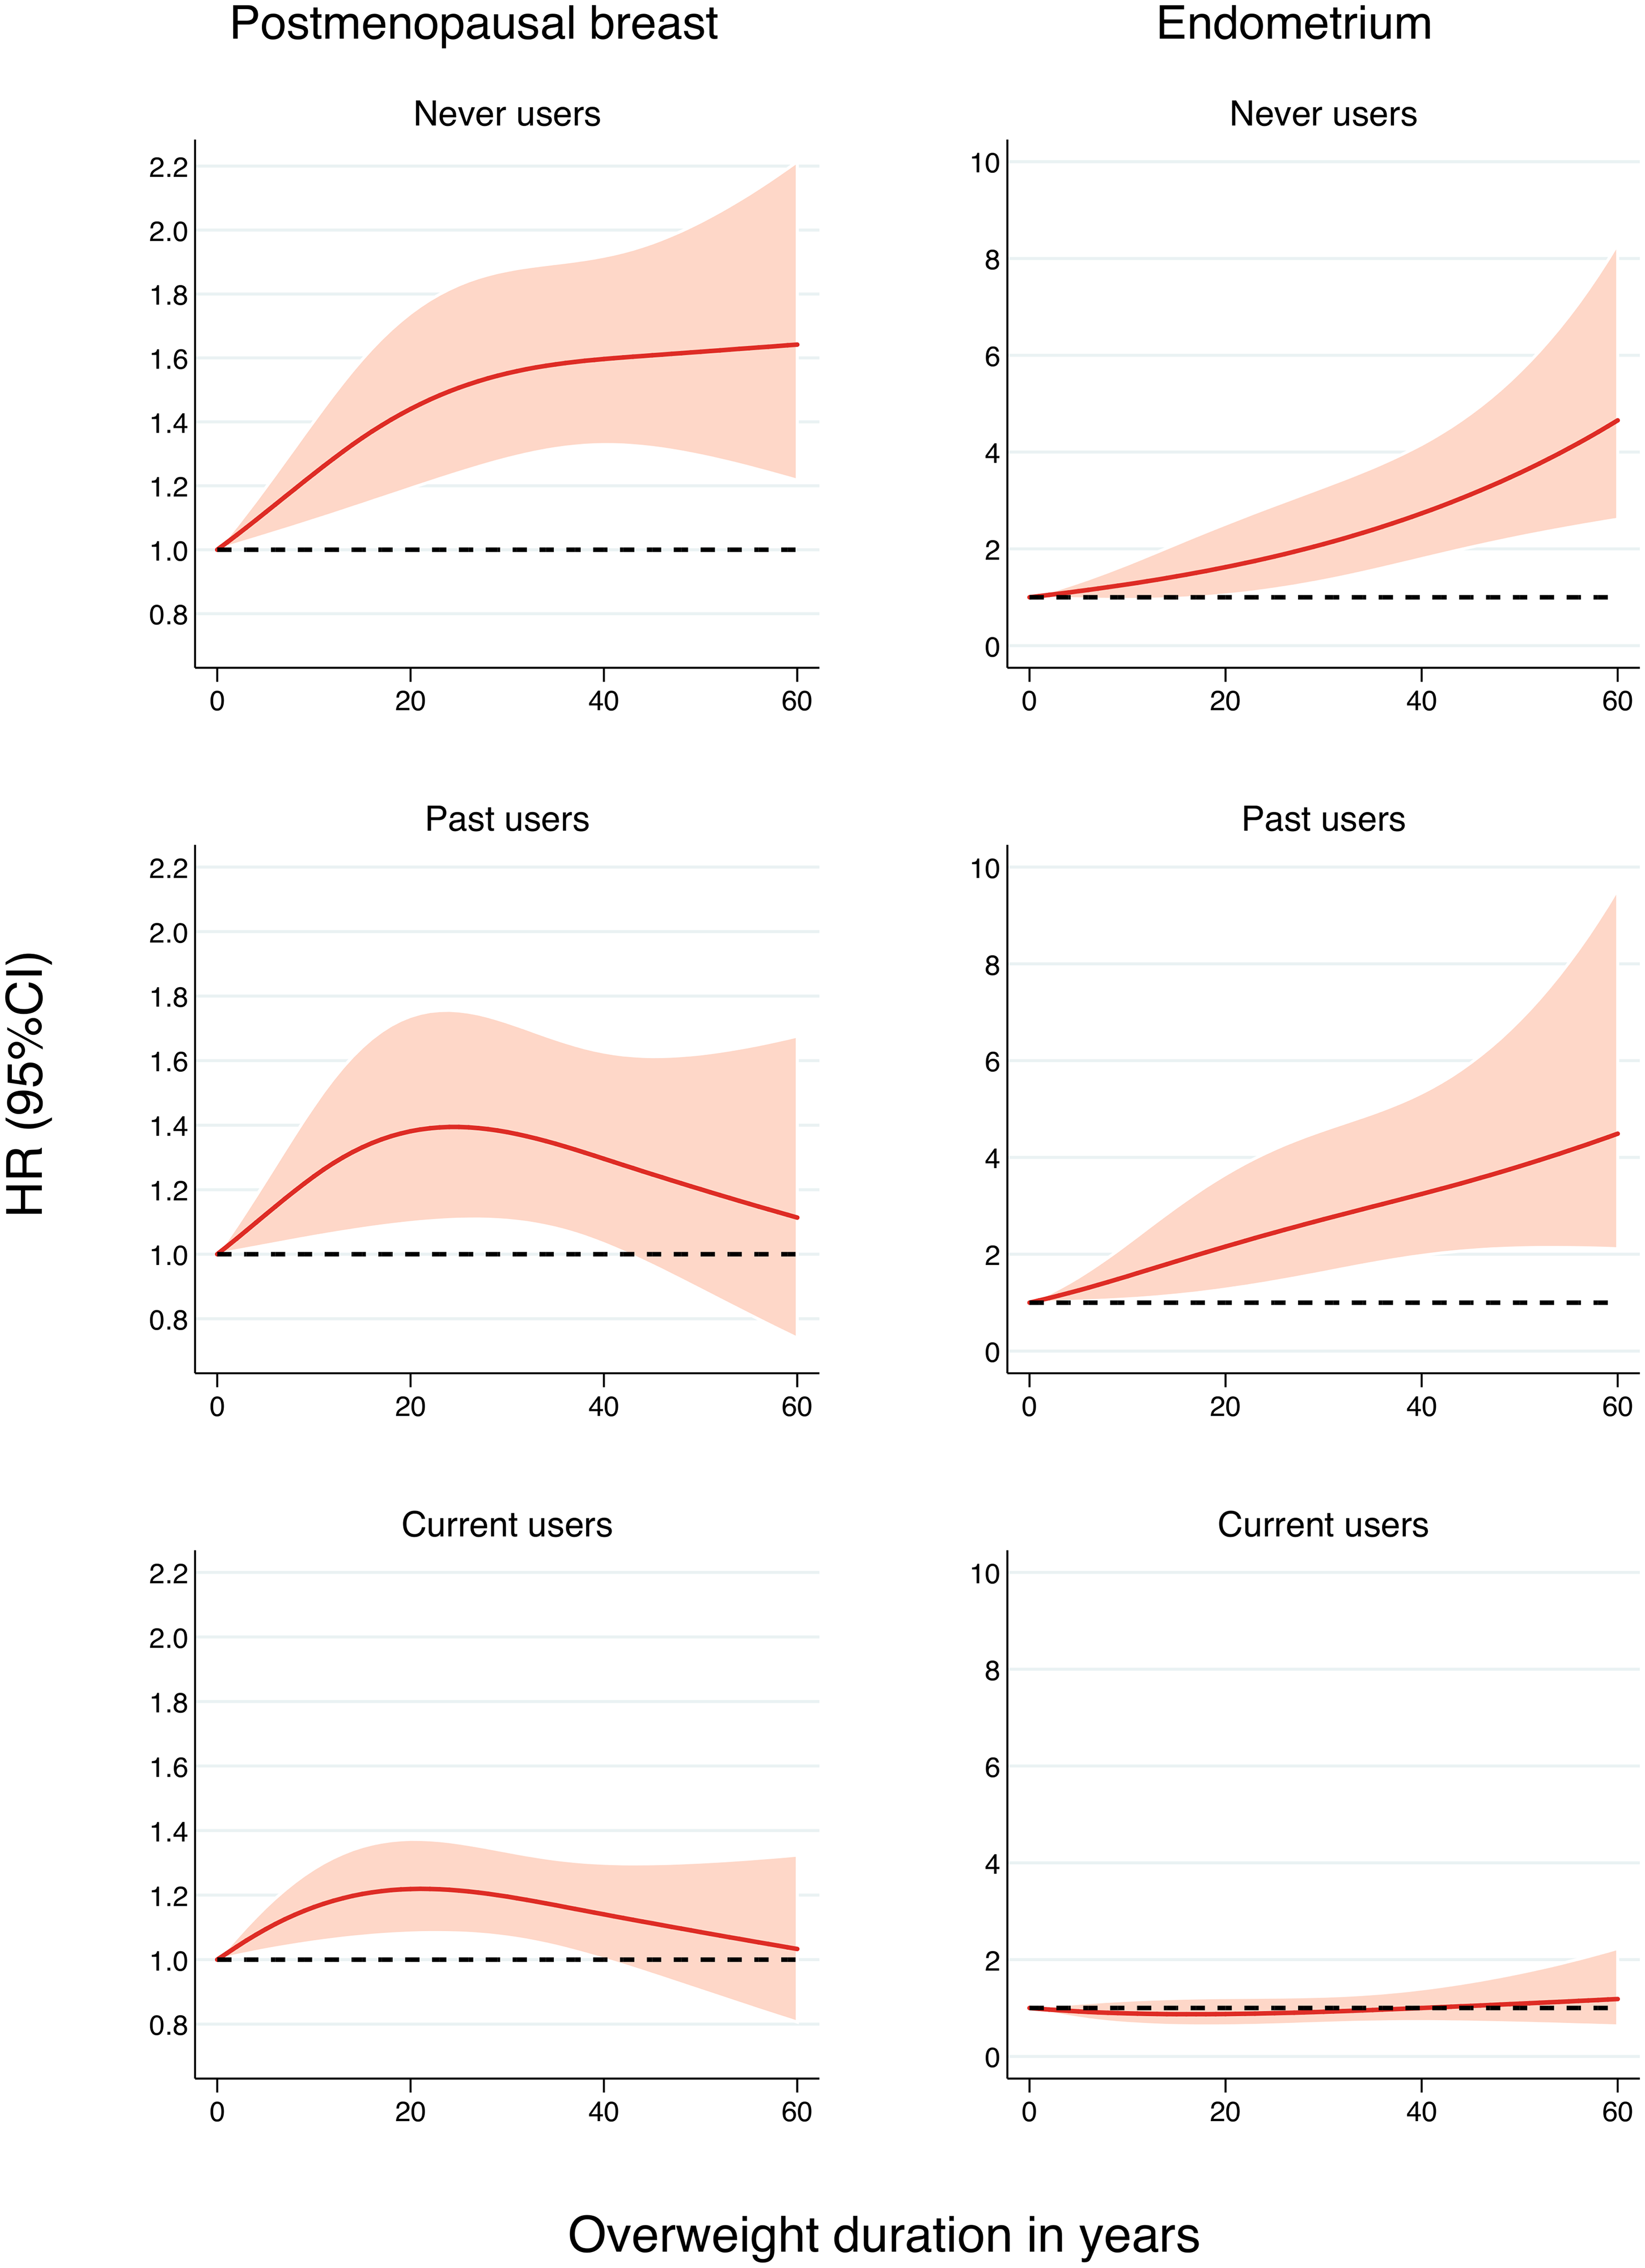 Association between overweight (BMI ≥ 25 kg/m<sup>2</sup>) duration since age 18 y and the risk of postmenopausal breast and endometrial cancer by postmenopausal hormone use, allowing for nonlinear effects, with 95% CIs.